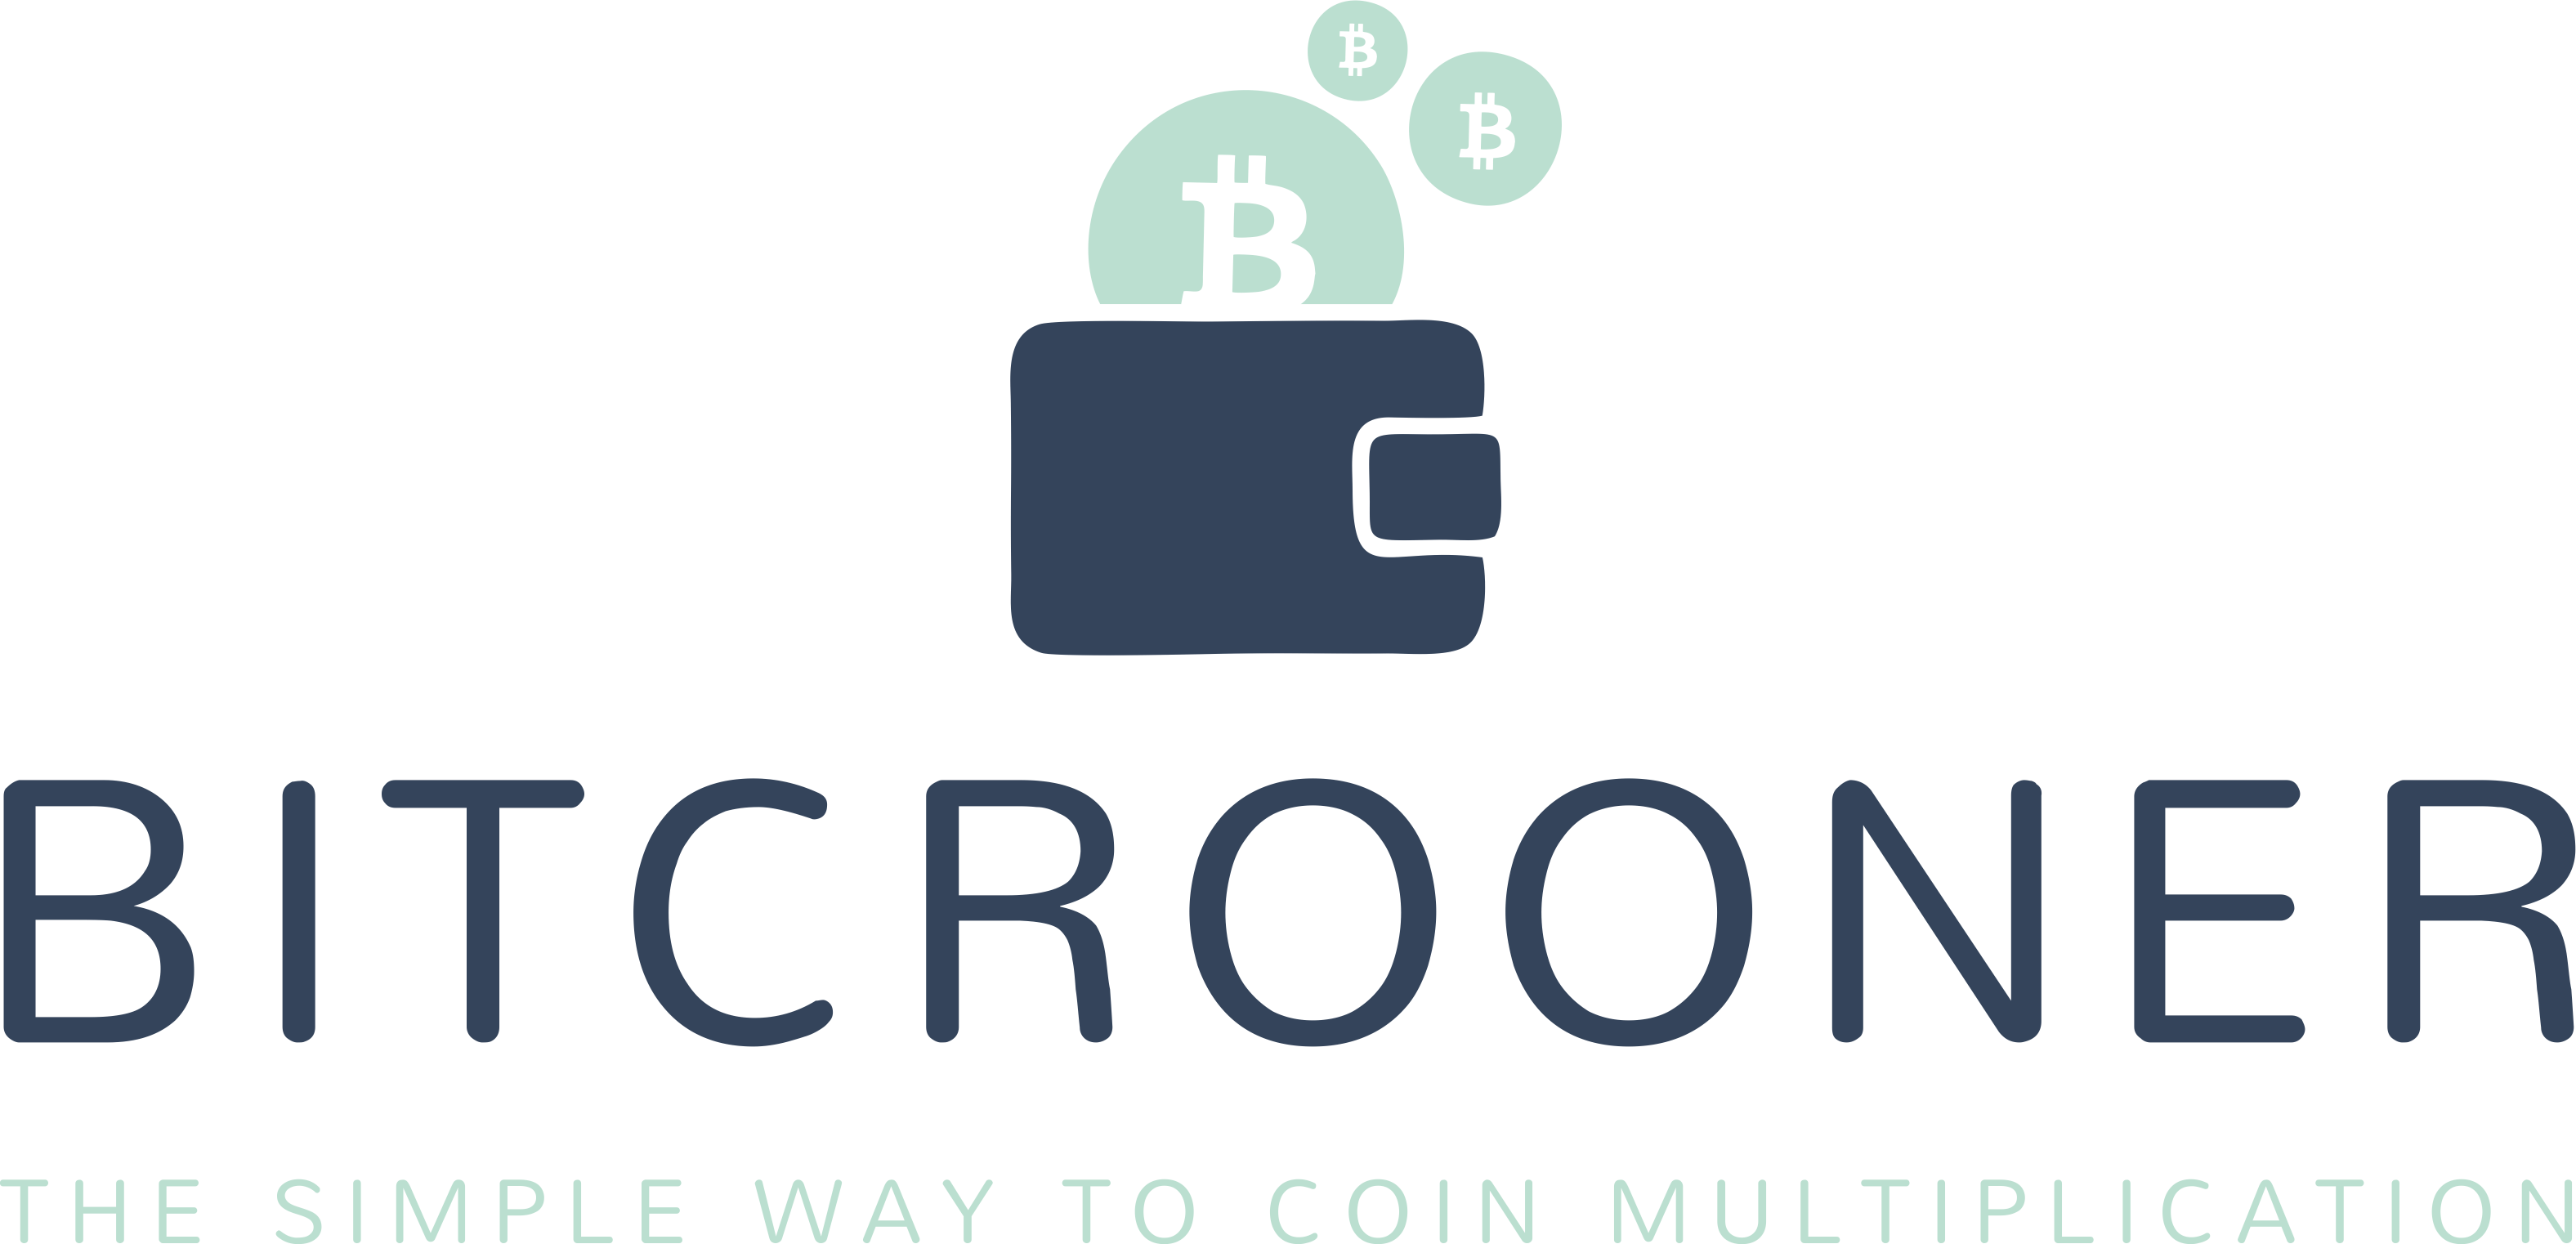 Bitcrooner enables the users to earn 1 BTC daily for 3 weeks from every 1 BTC invested 1